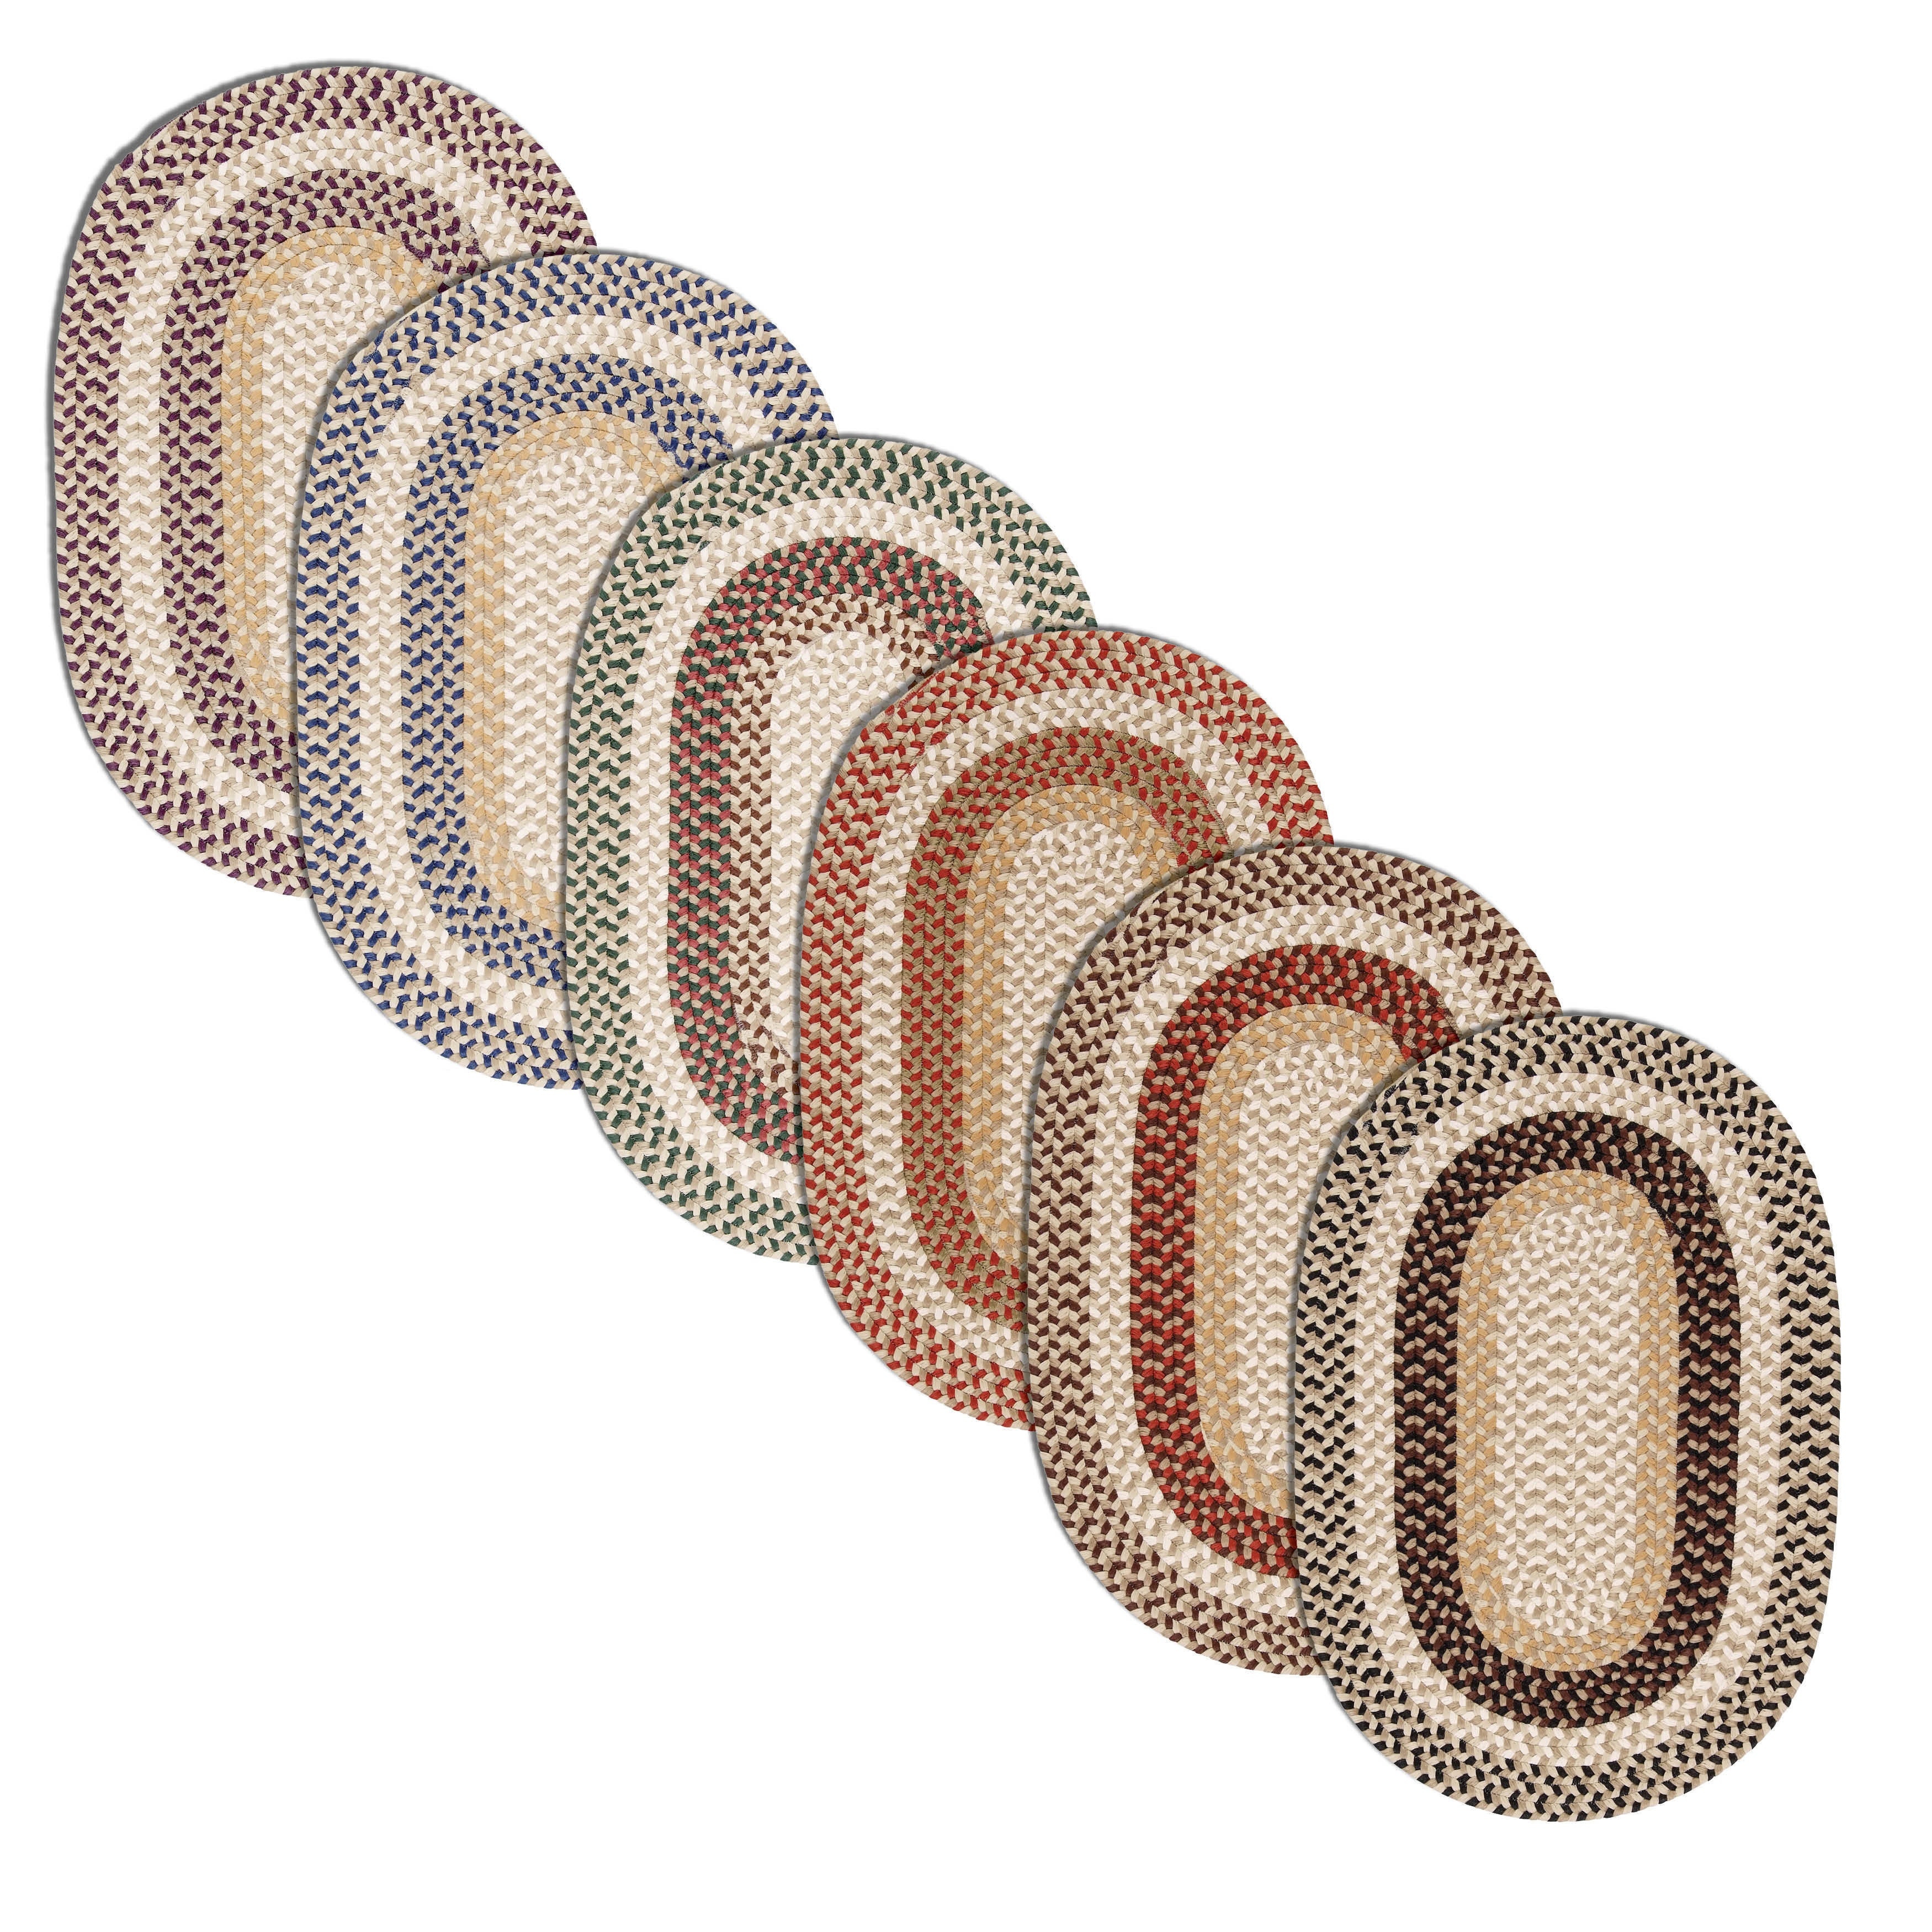 Colonial Mills, Inc. Breckenridge Multicolored Indoor/ Outdoor Braided Rug (9' x 12') at Sears.com